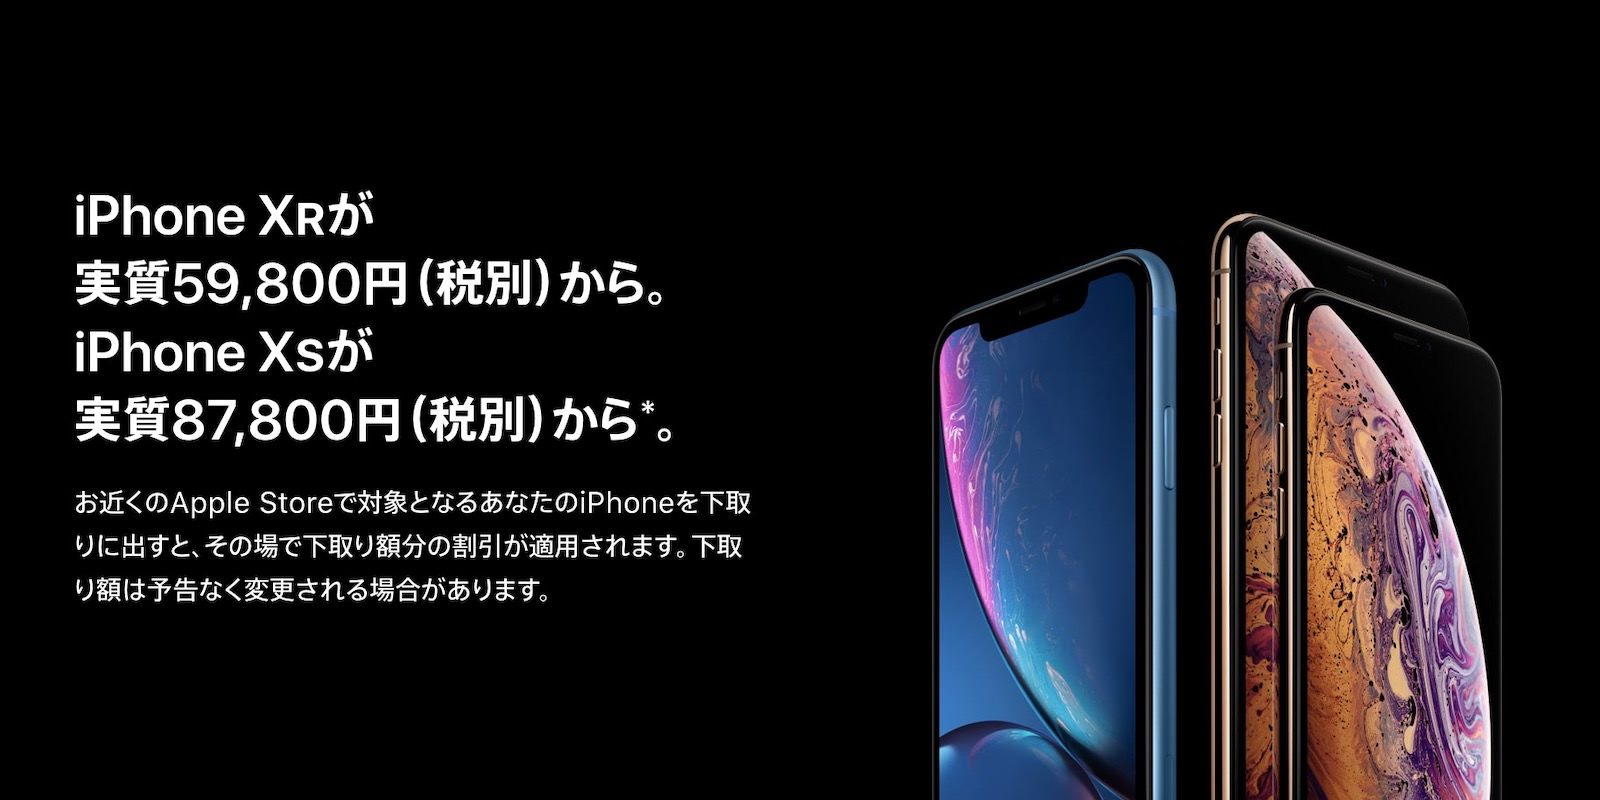 Iphonexs xr retail campaign extended